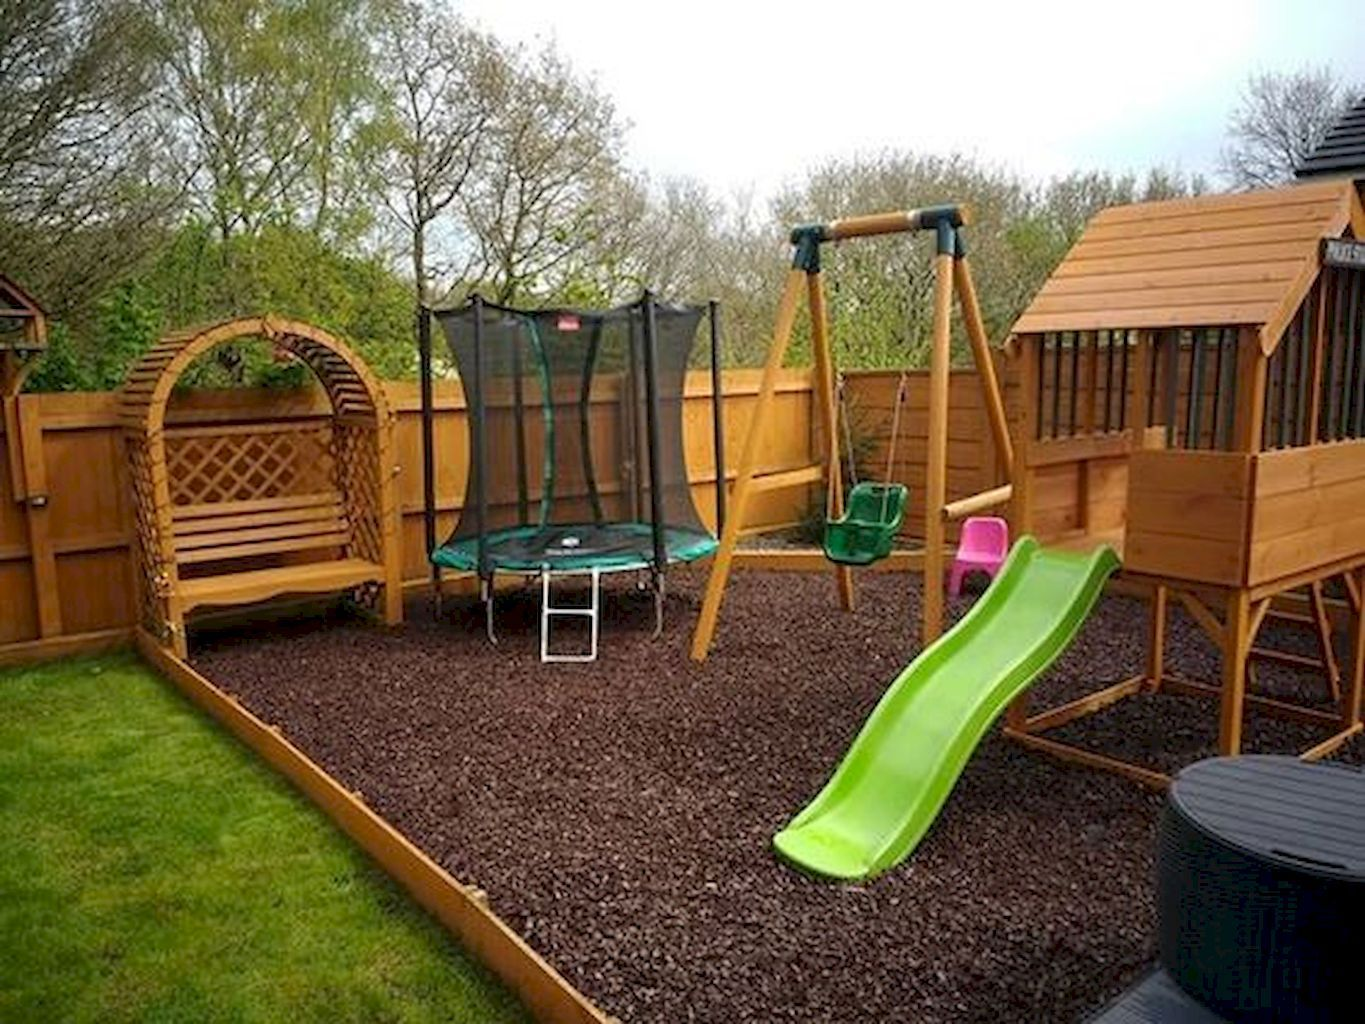 70 Spectacular Kids Garden Ideas With Outdoor Play Areas Kids